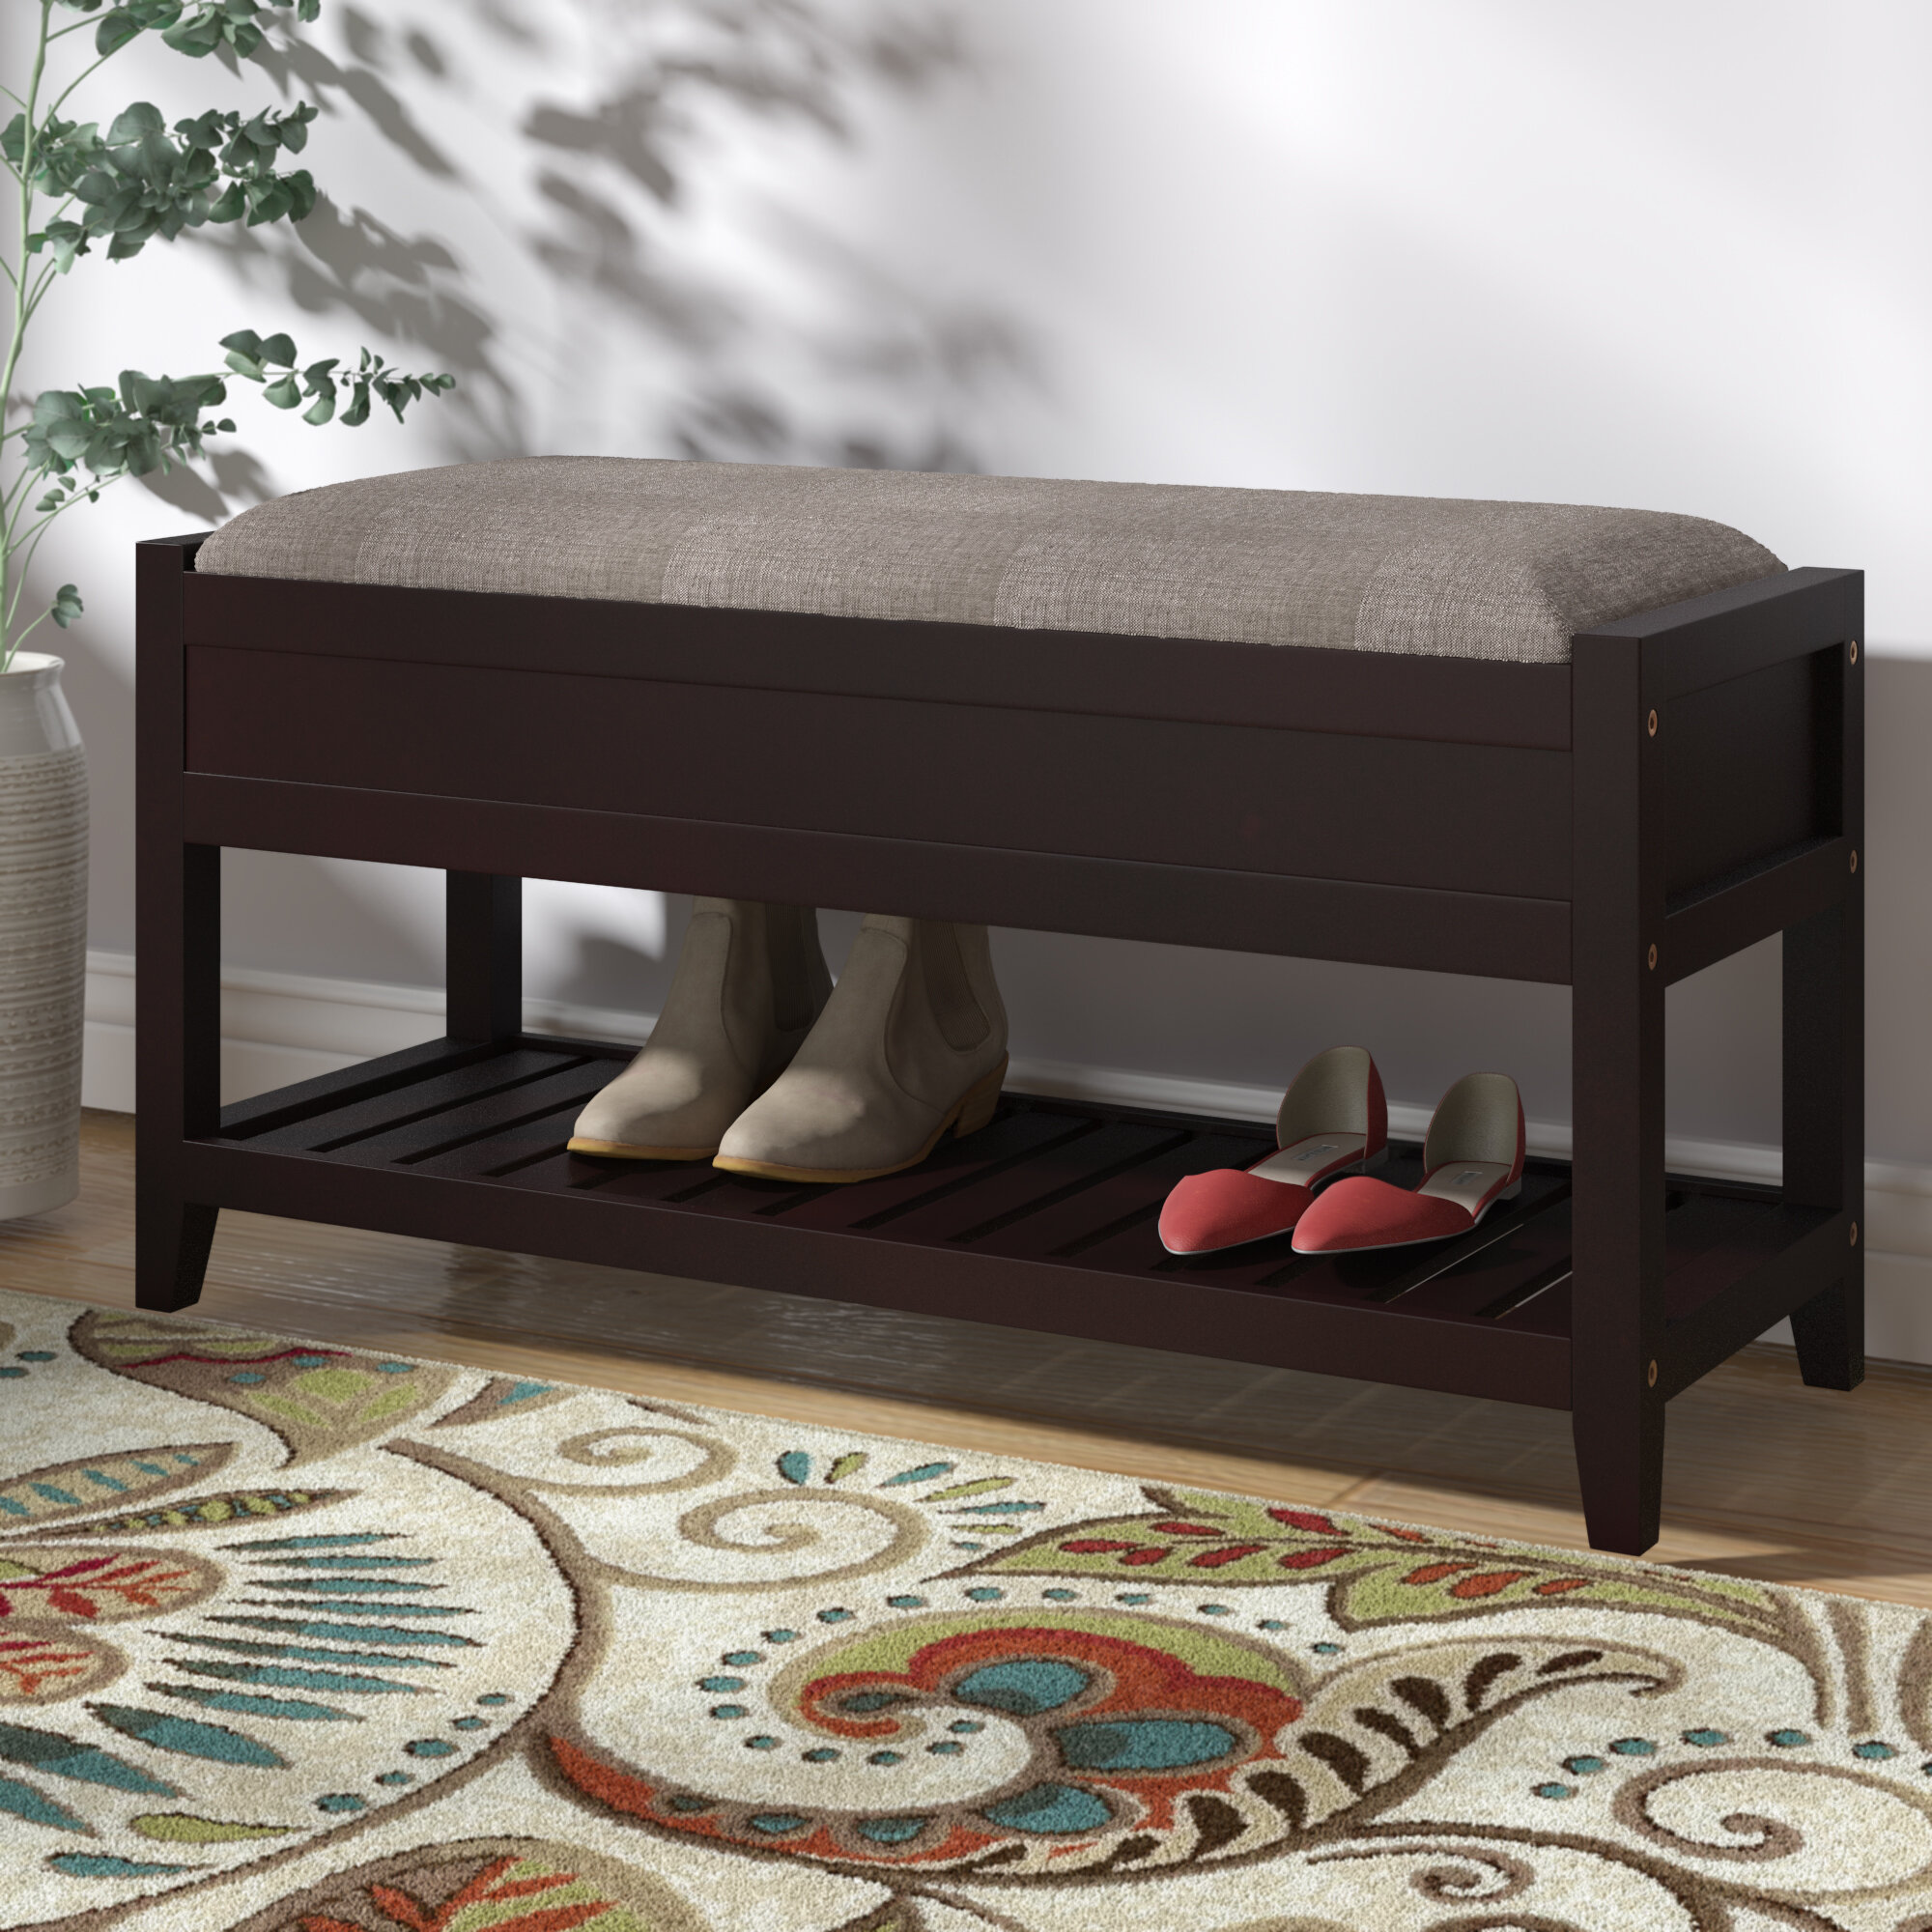 Charlton Home Lambrecht Seating Bench with Shoe Storage u0026 Reviews   Wayfair & Charlton Home Lambrecht Seating Bench with Shoe Storage u0026 Reviews ...